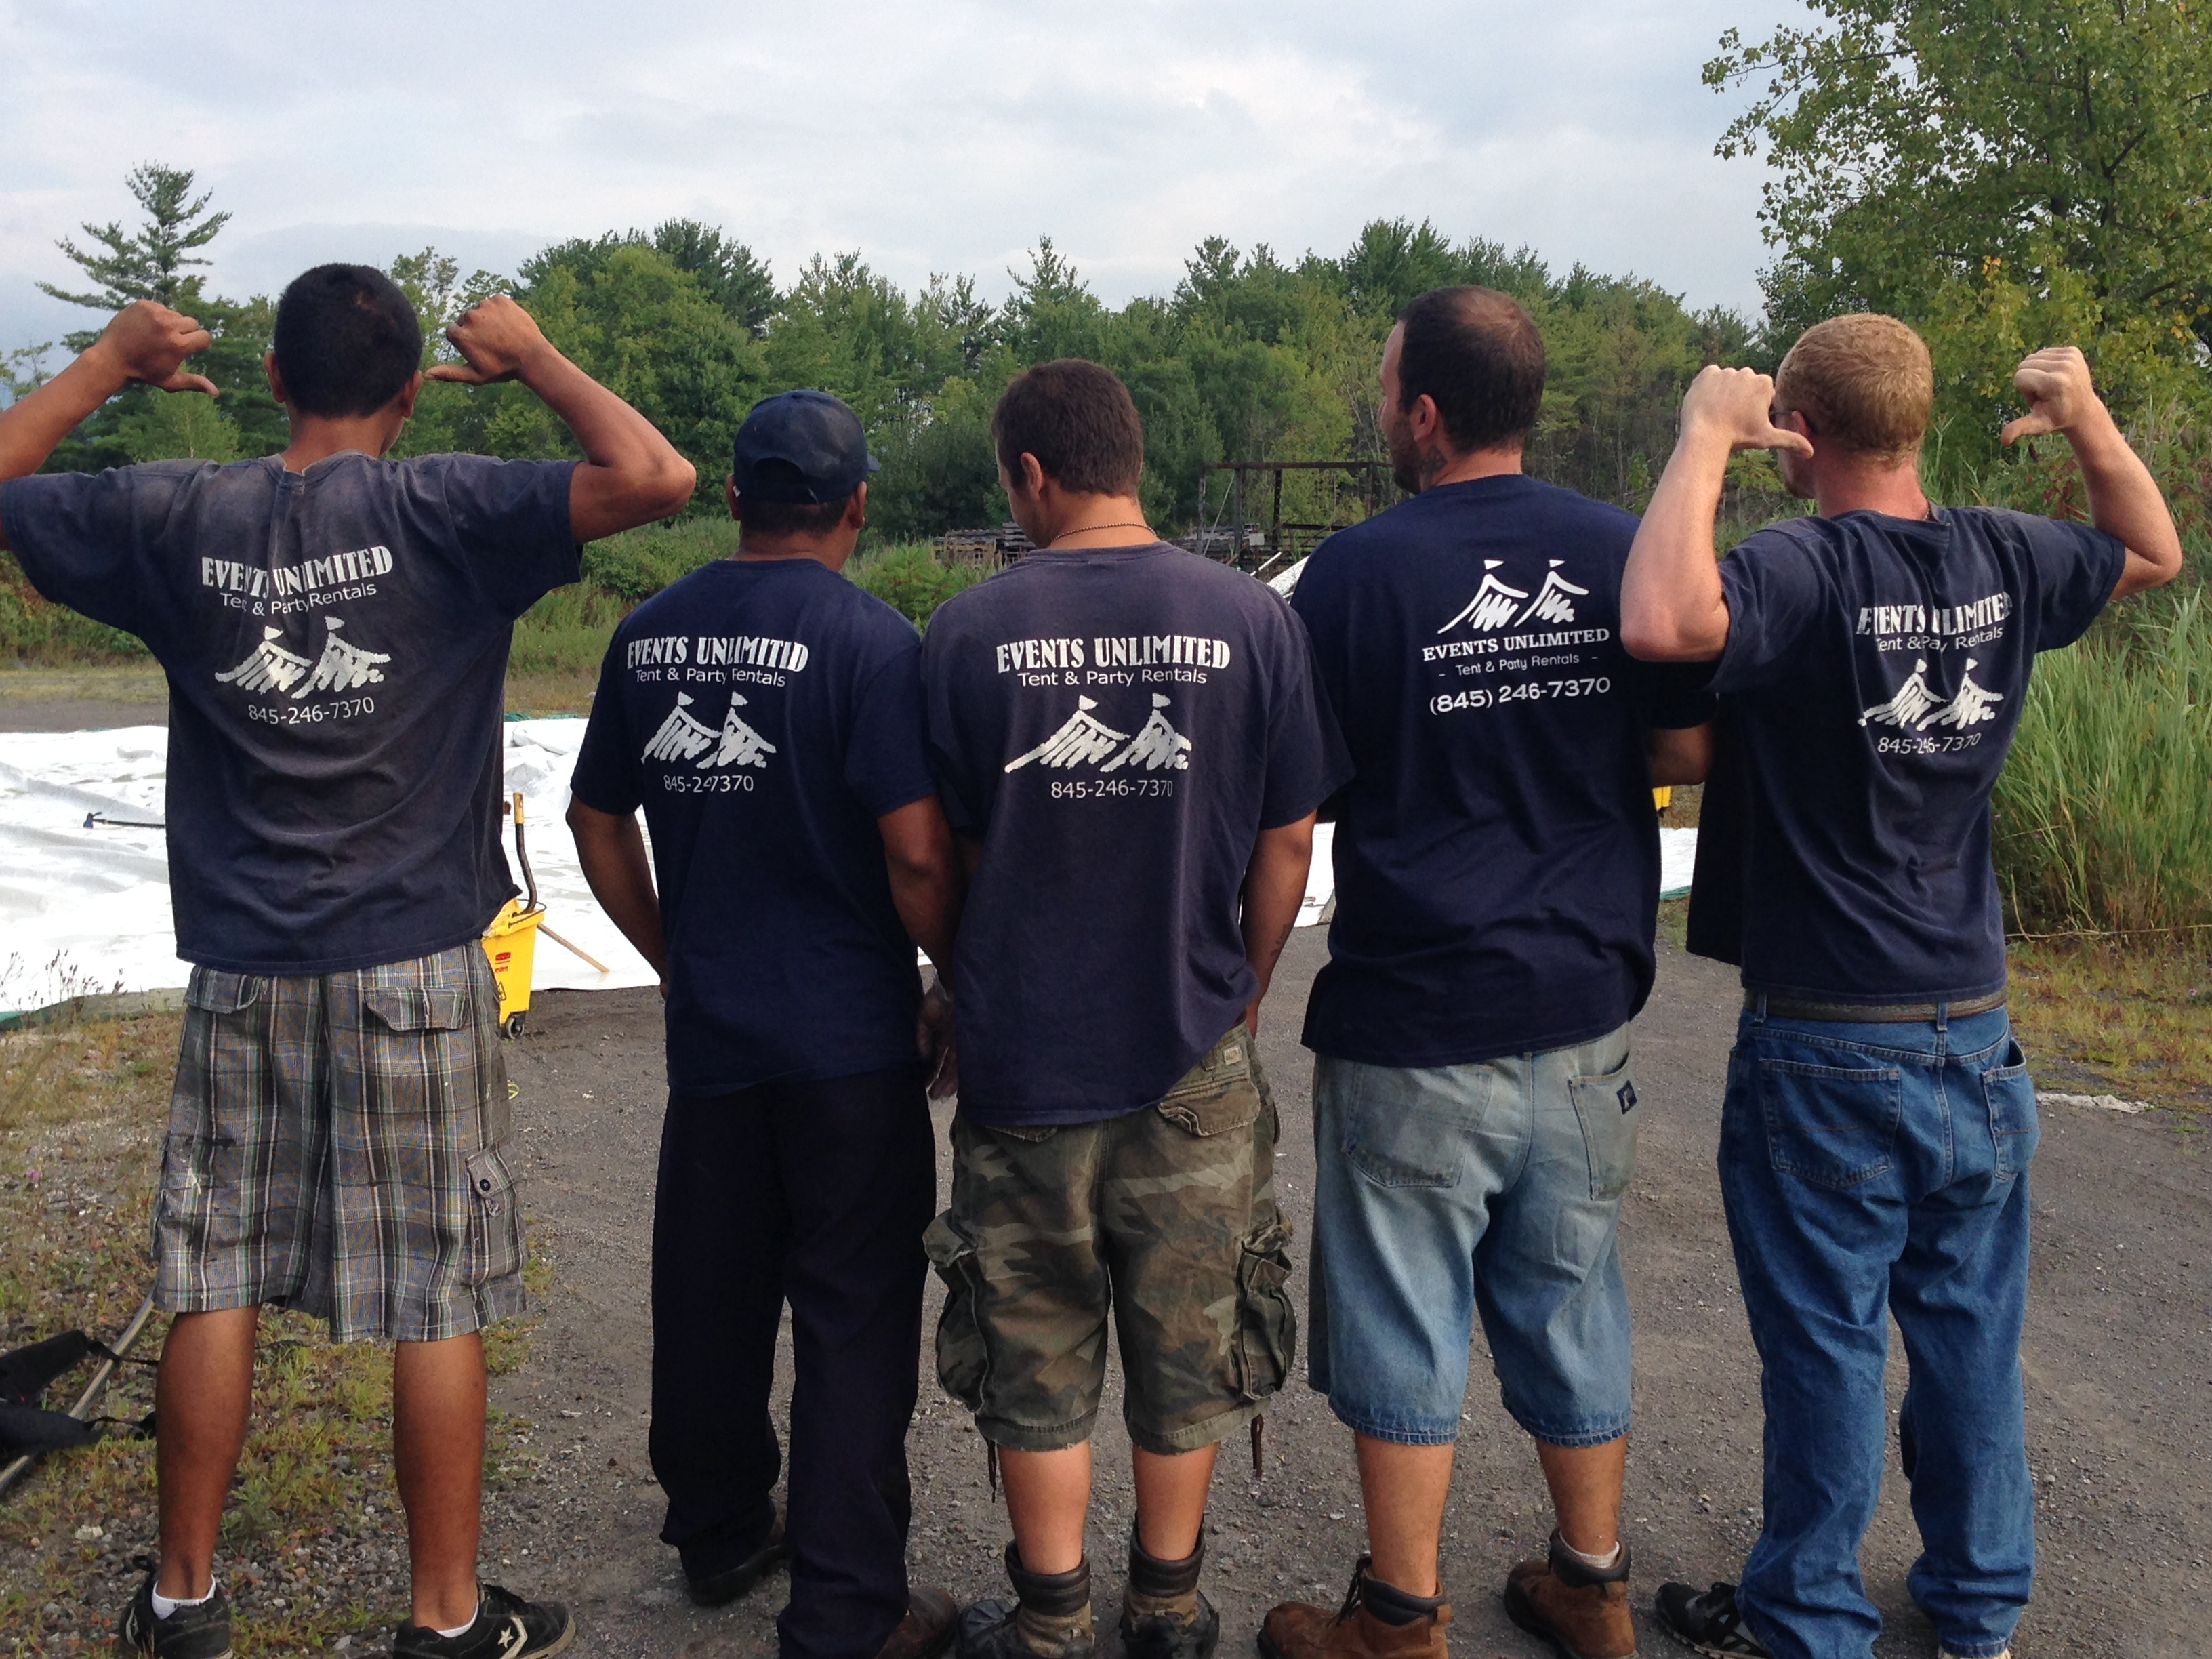 Shirt design ink - Events Unlimited Crew Looking Sharp In Our New Custom Ink Shirts T Shirt Photo